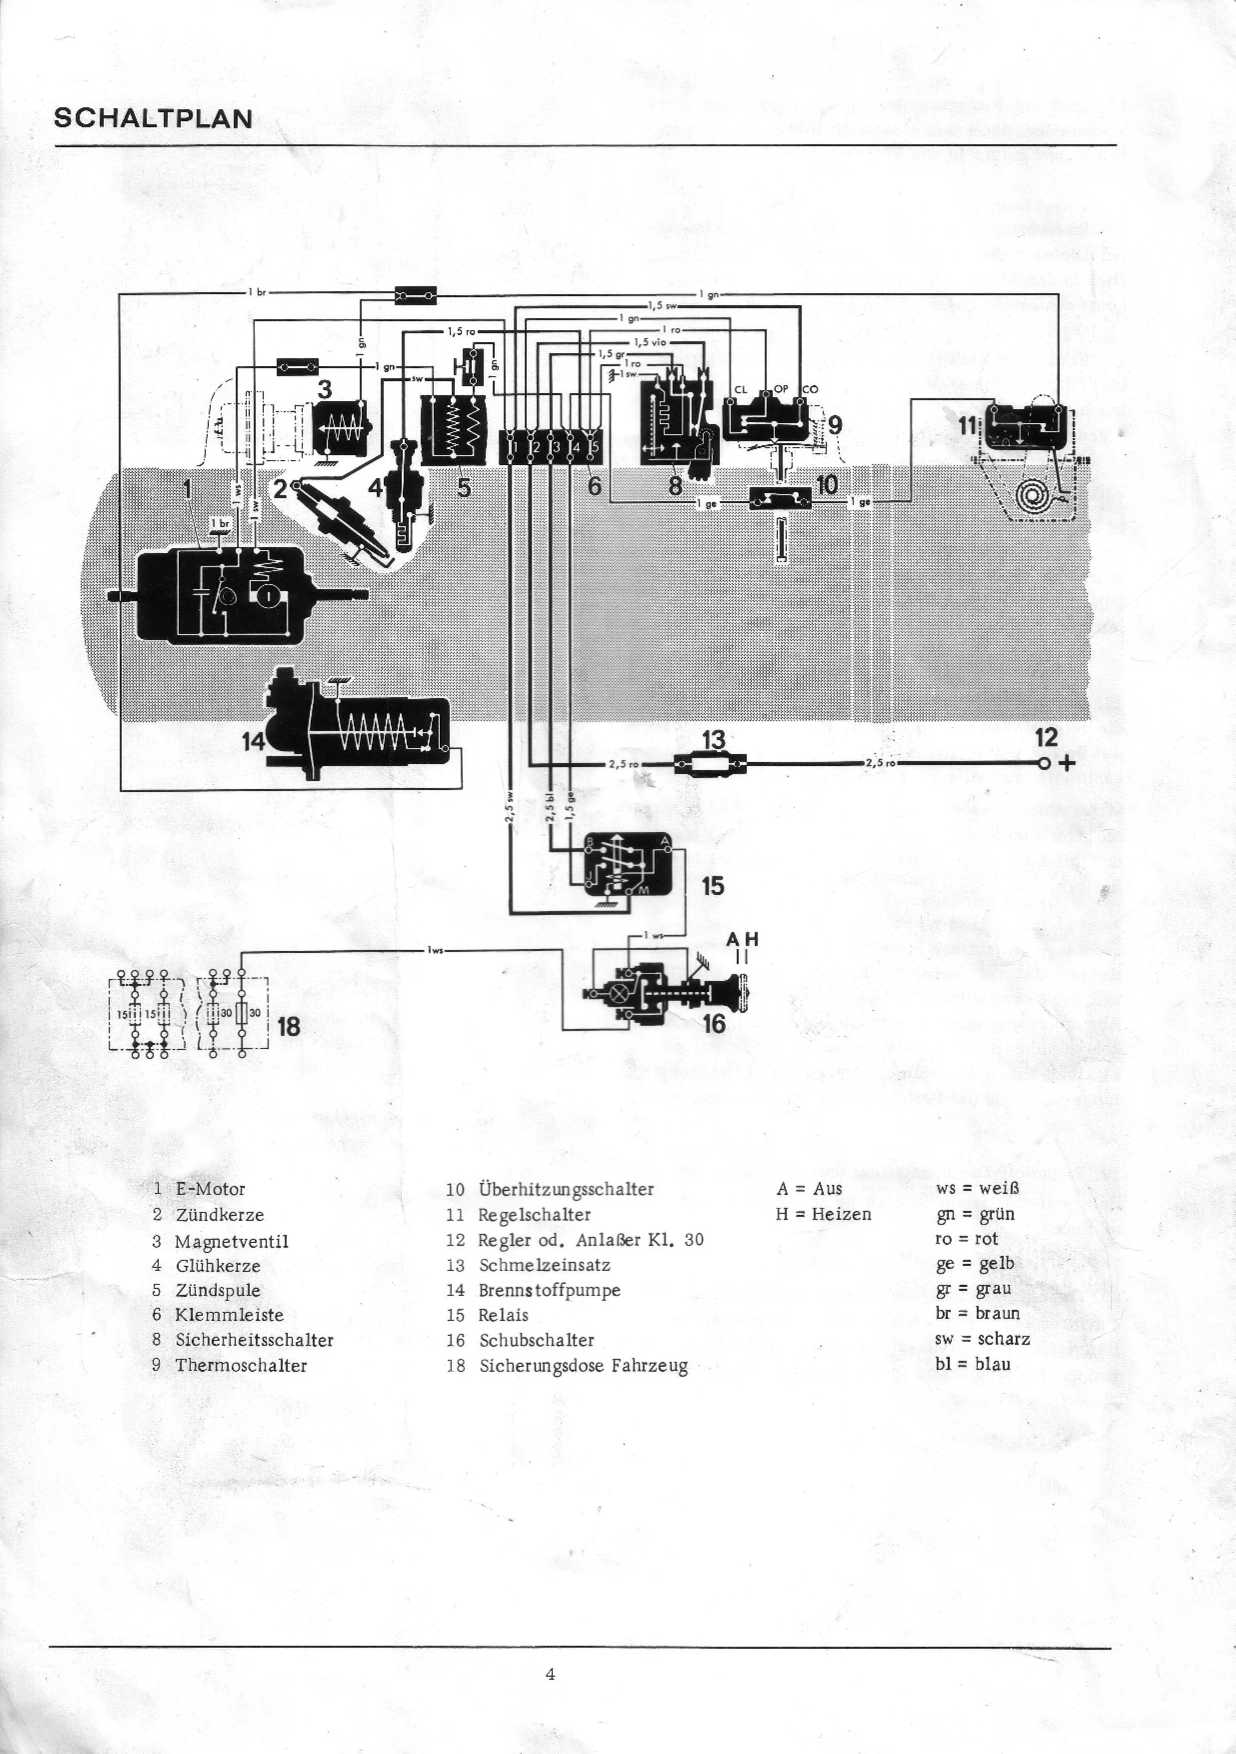 1970 10 eberspaecher bn4 wiring diagram?resize\=665%2C944 1970 mach 1 wiring diagram 1970 mach 1 exhaust, 1970 mach 1 door 1970 mustang wiring diagram at soozxer.org